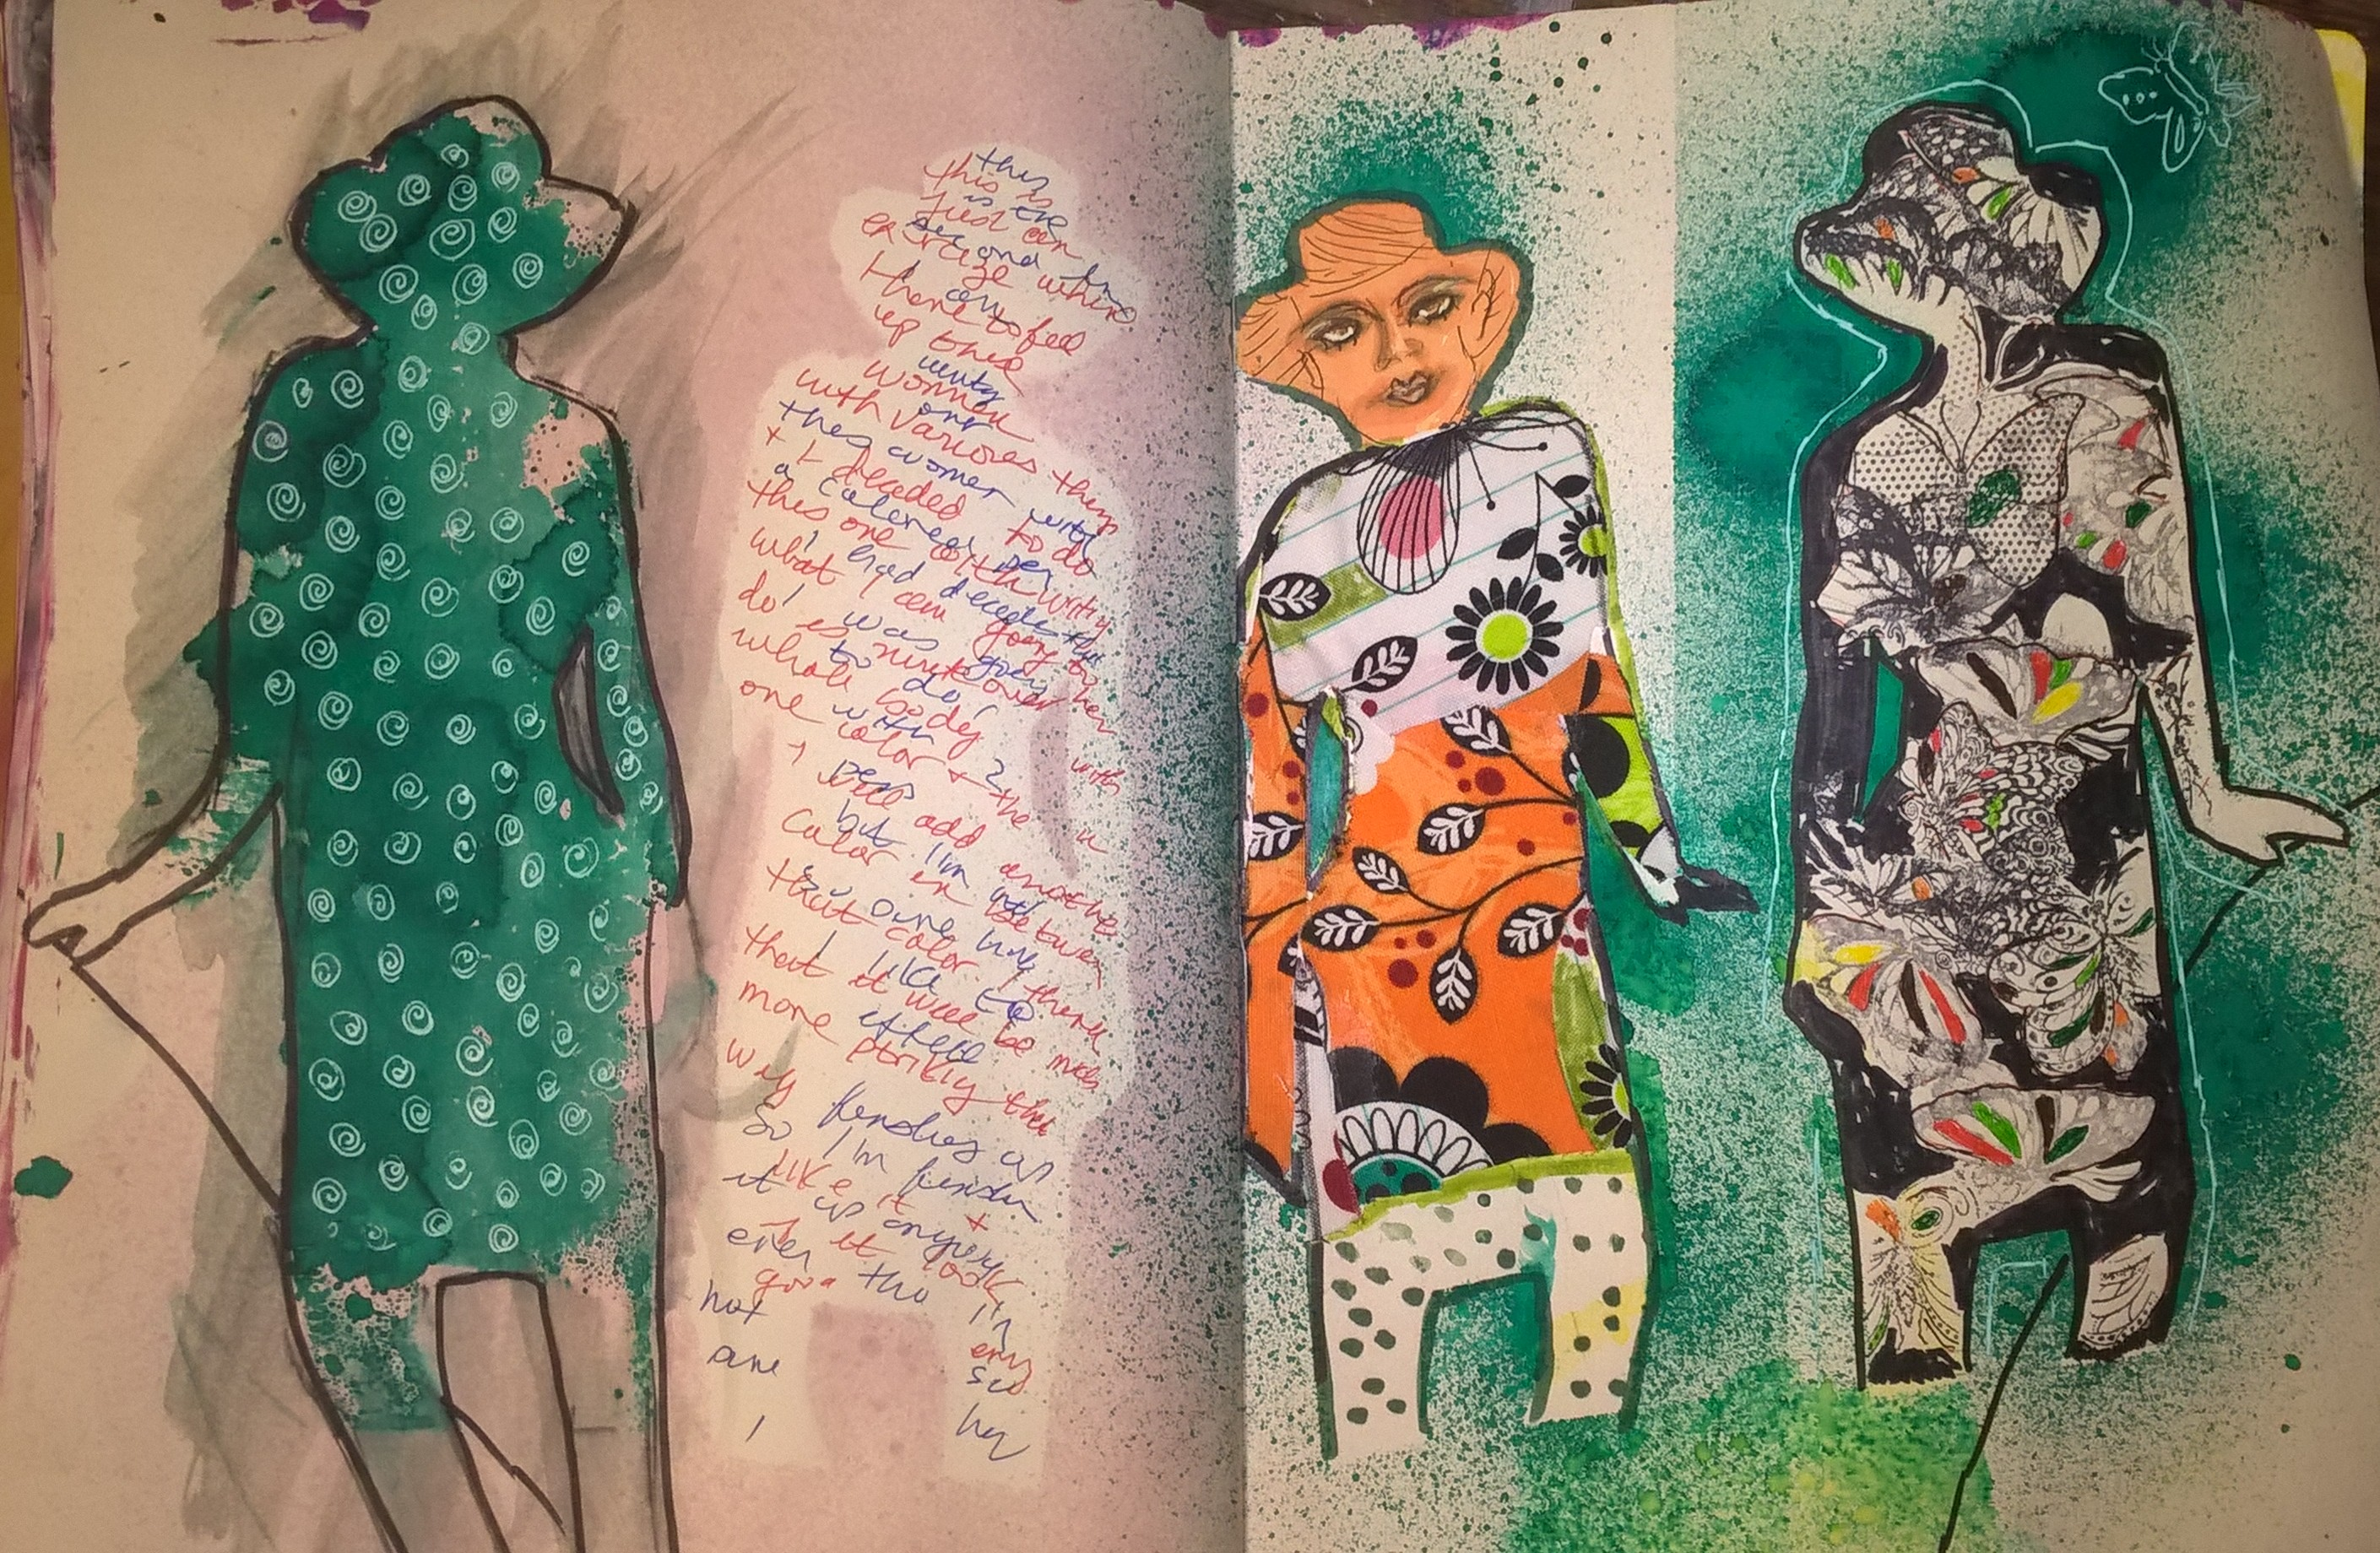 journal page with outlines of 4 women